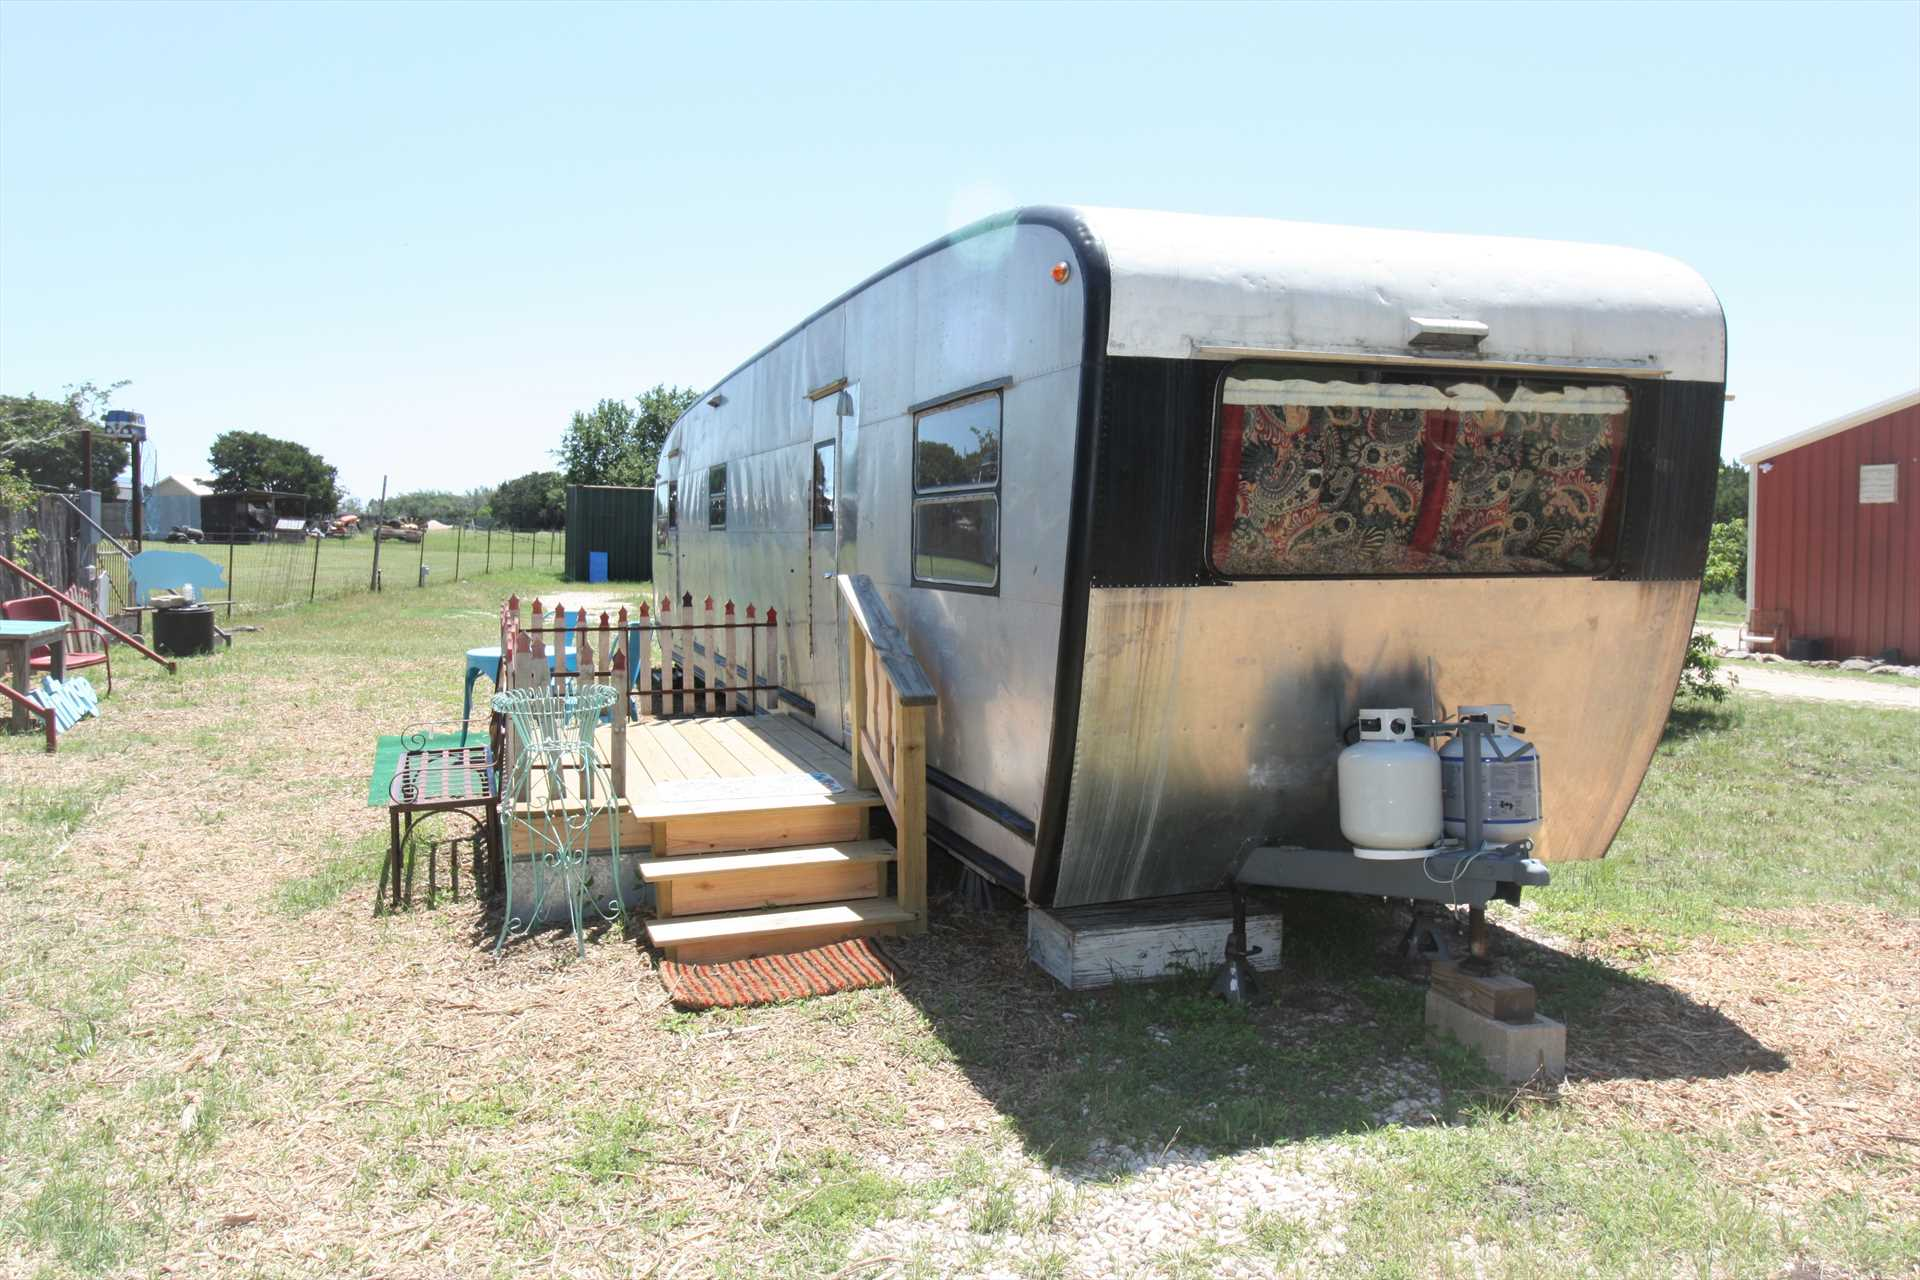 This pretty 50's era Spartanette trailer saw its time on the road, now it's your charming getaway in the Hill Country!